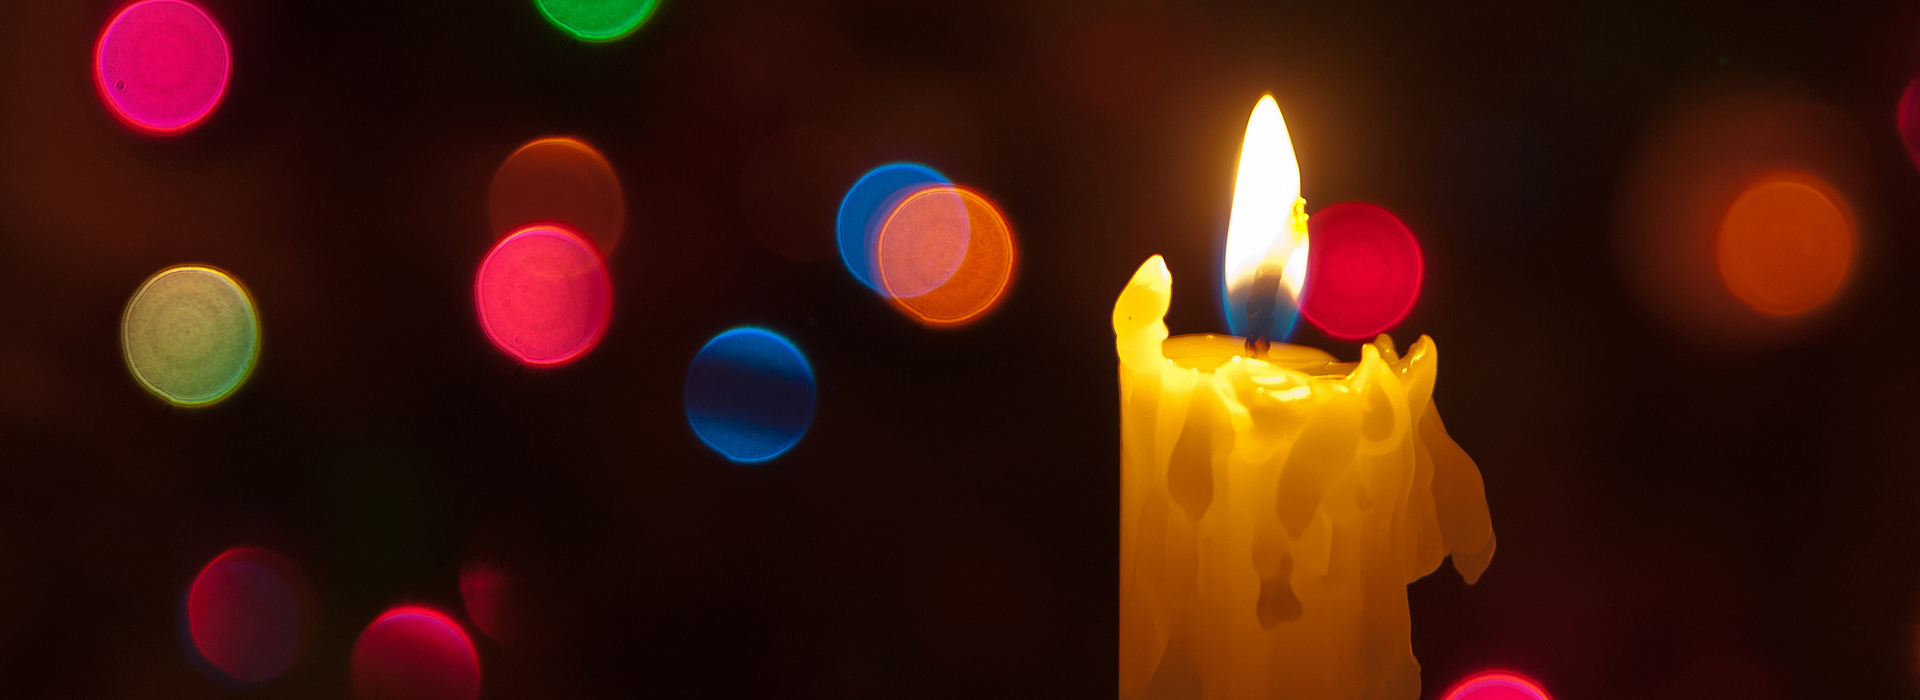 candle-banner